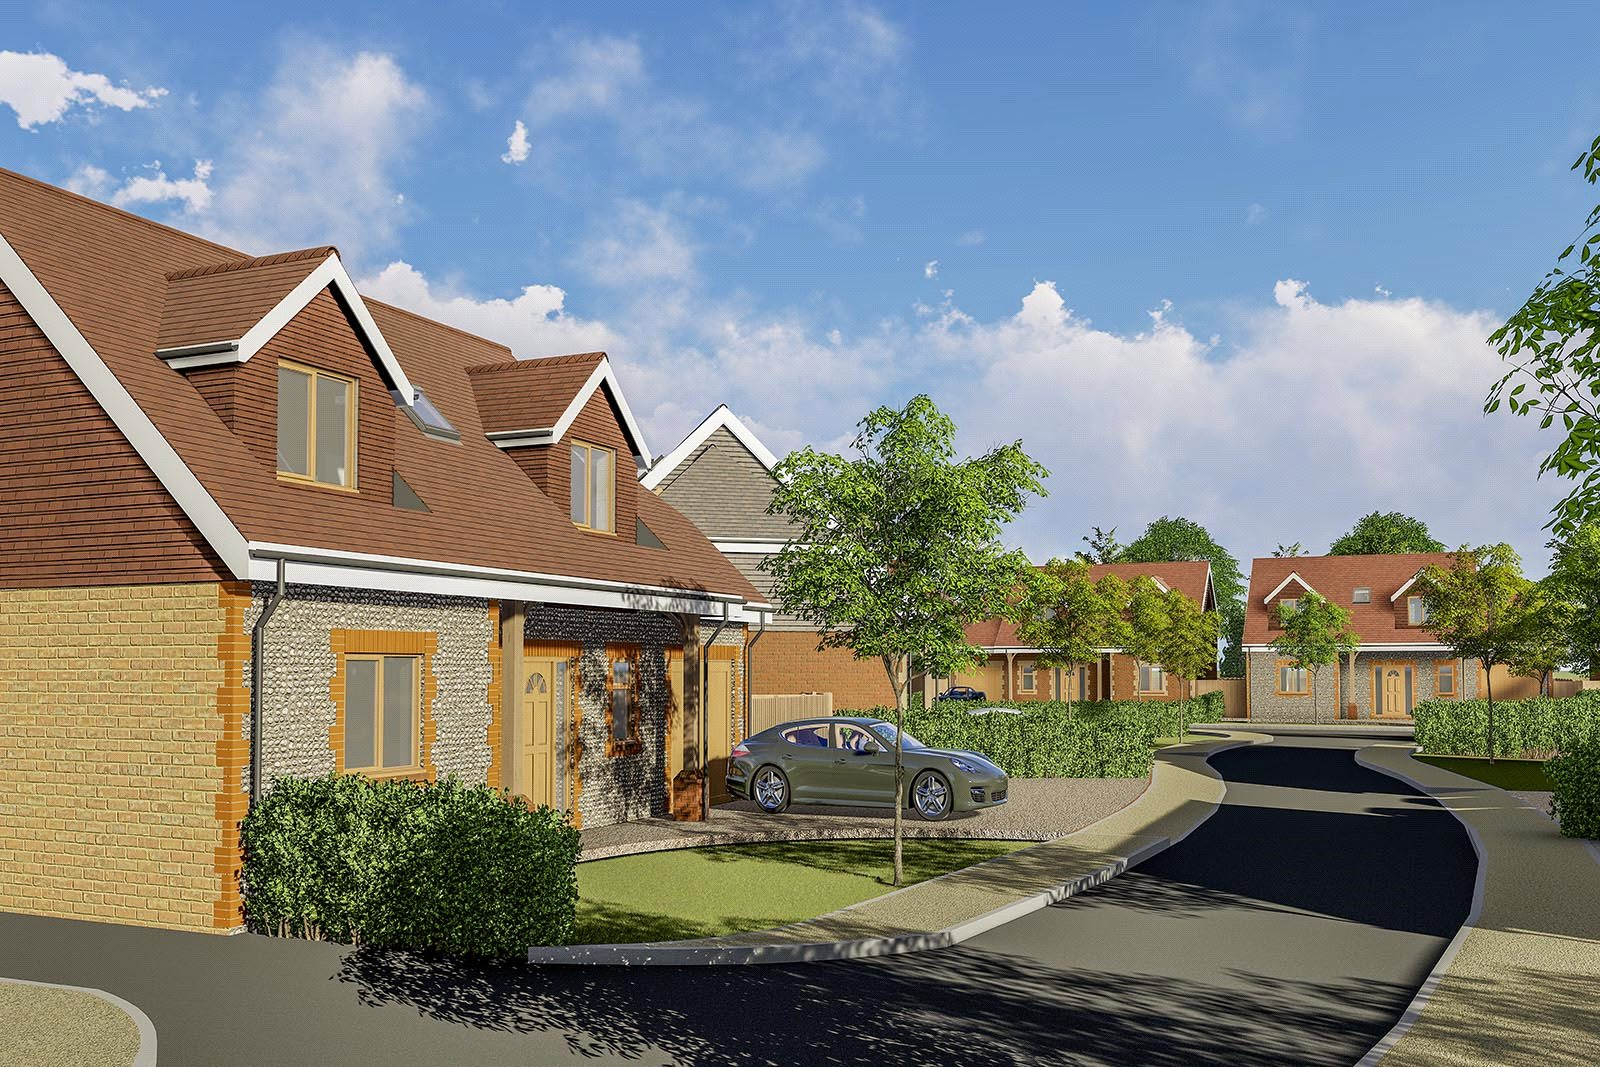 3 bed house for sale in Swallows Gate, Dappers Lane, Angmering 4